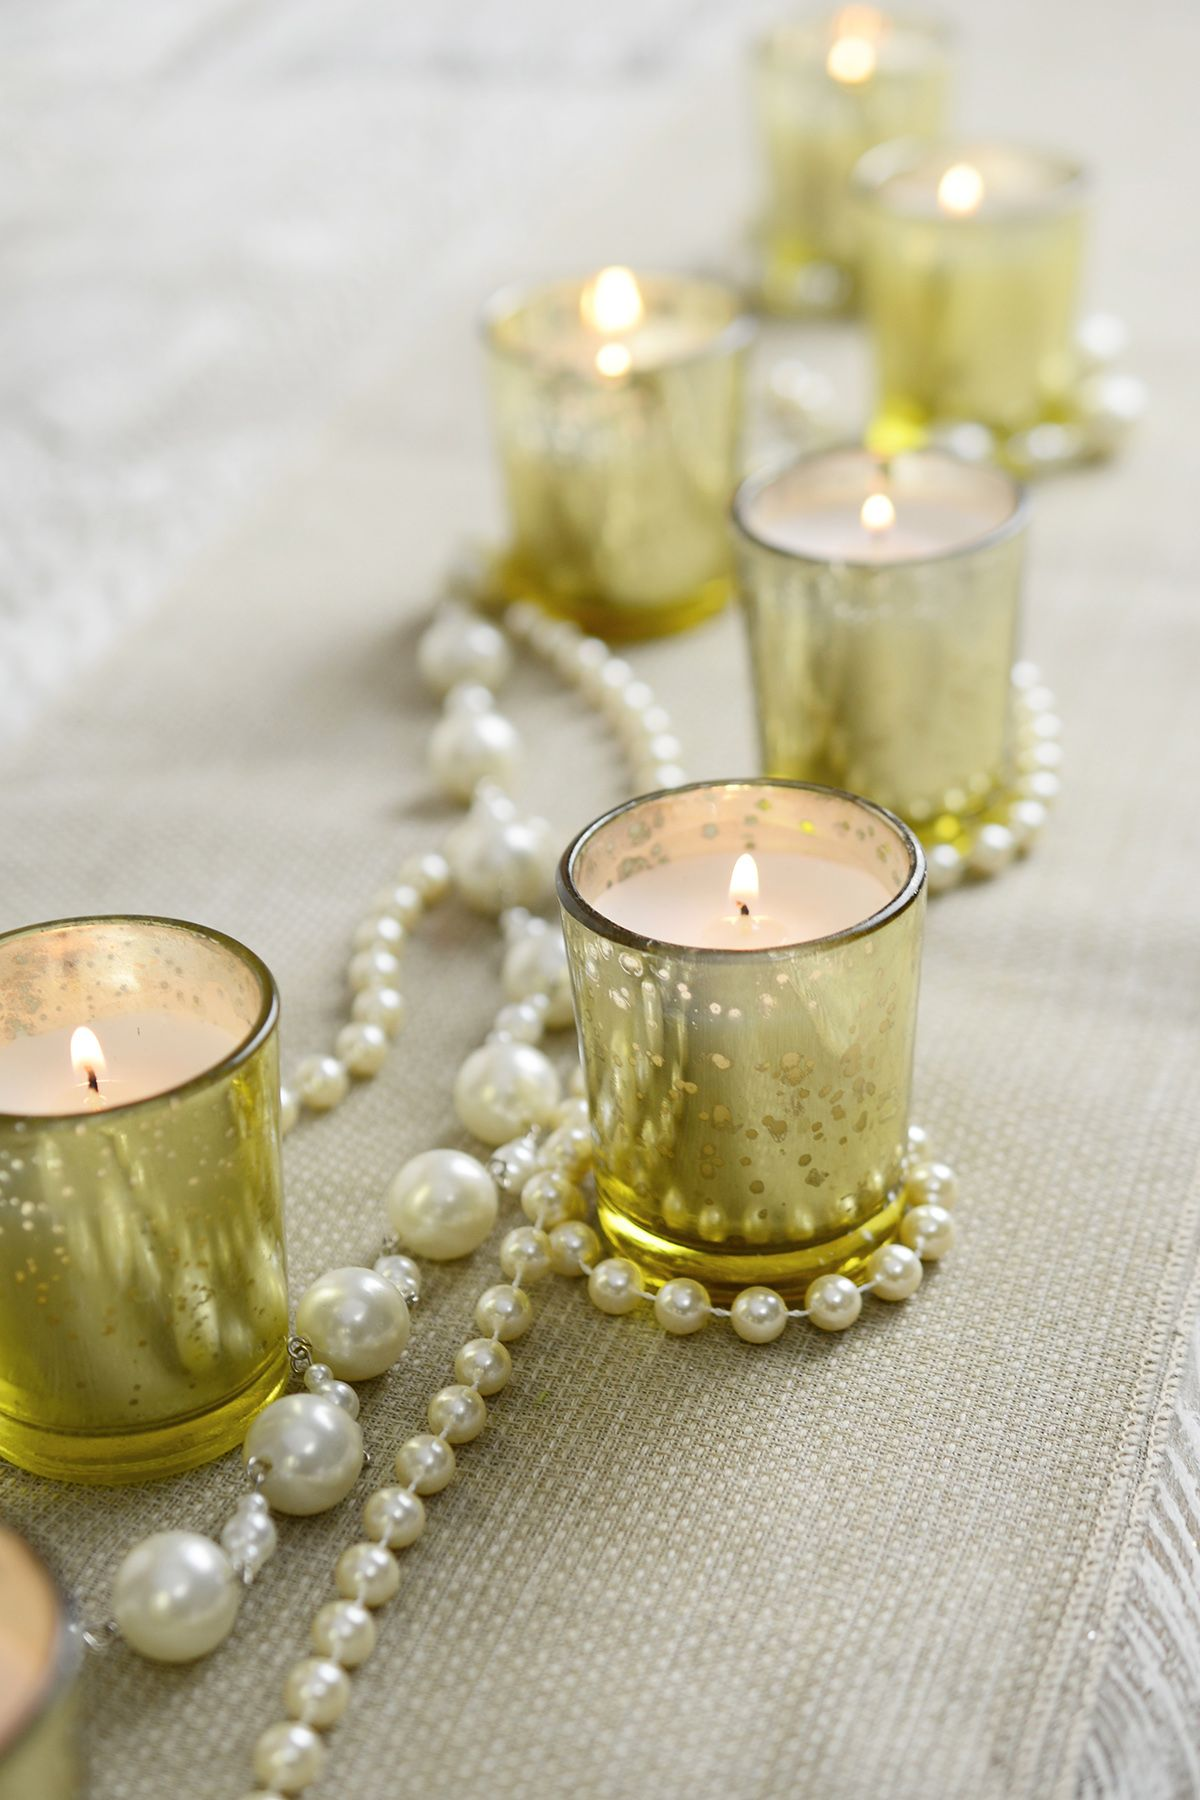 12 Gold Mercury Glass Votive Holders and 12 White Unscented Candles ...